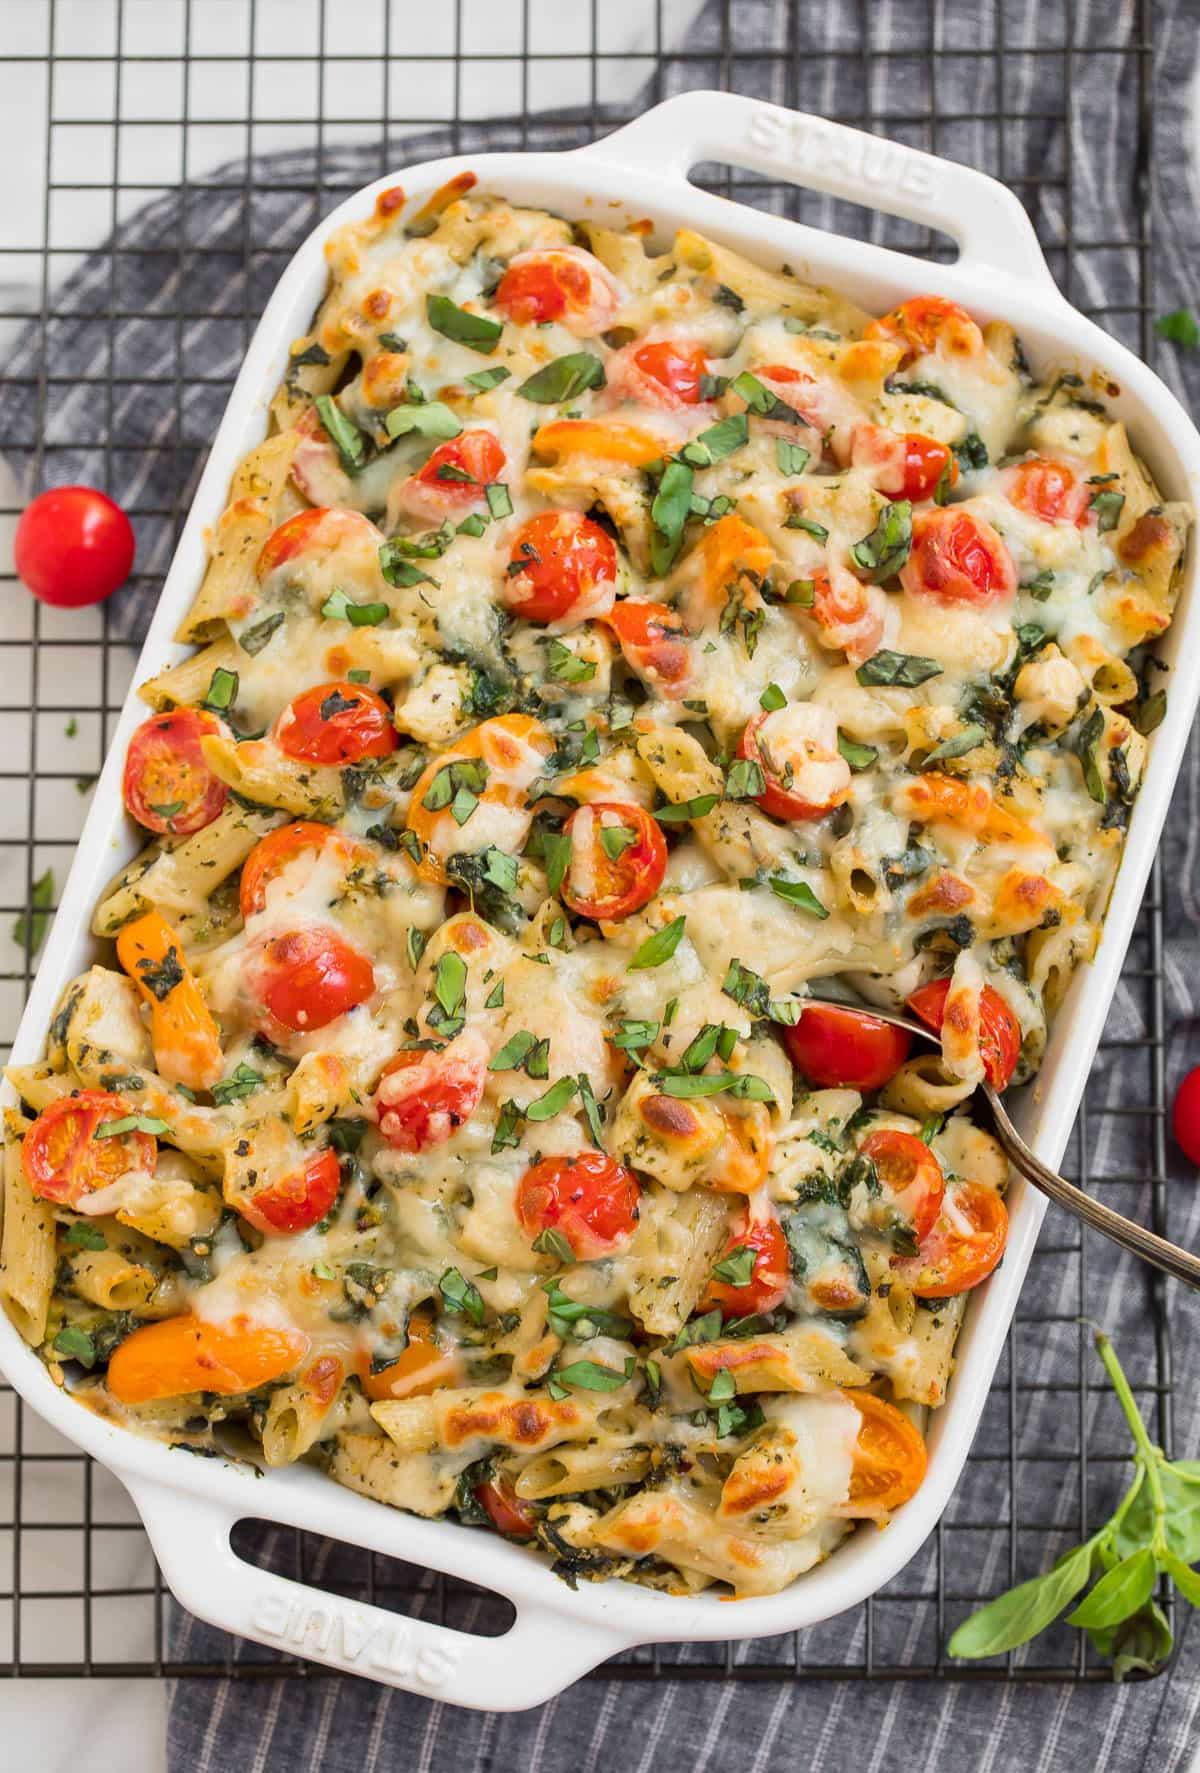 Tasty and creamy chicken pesto pasta recipe in a baking dish with tomatoes